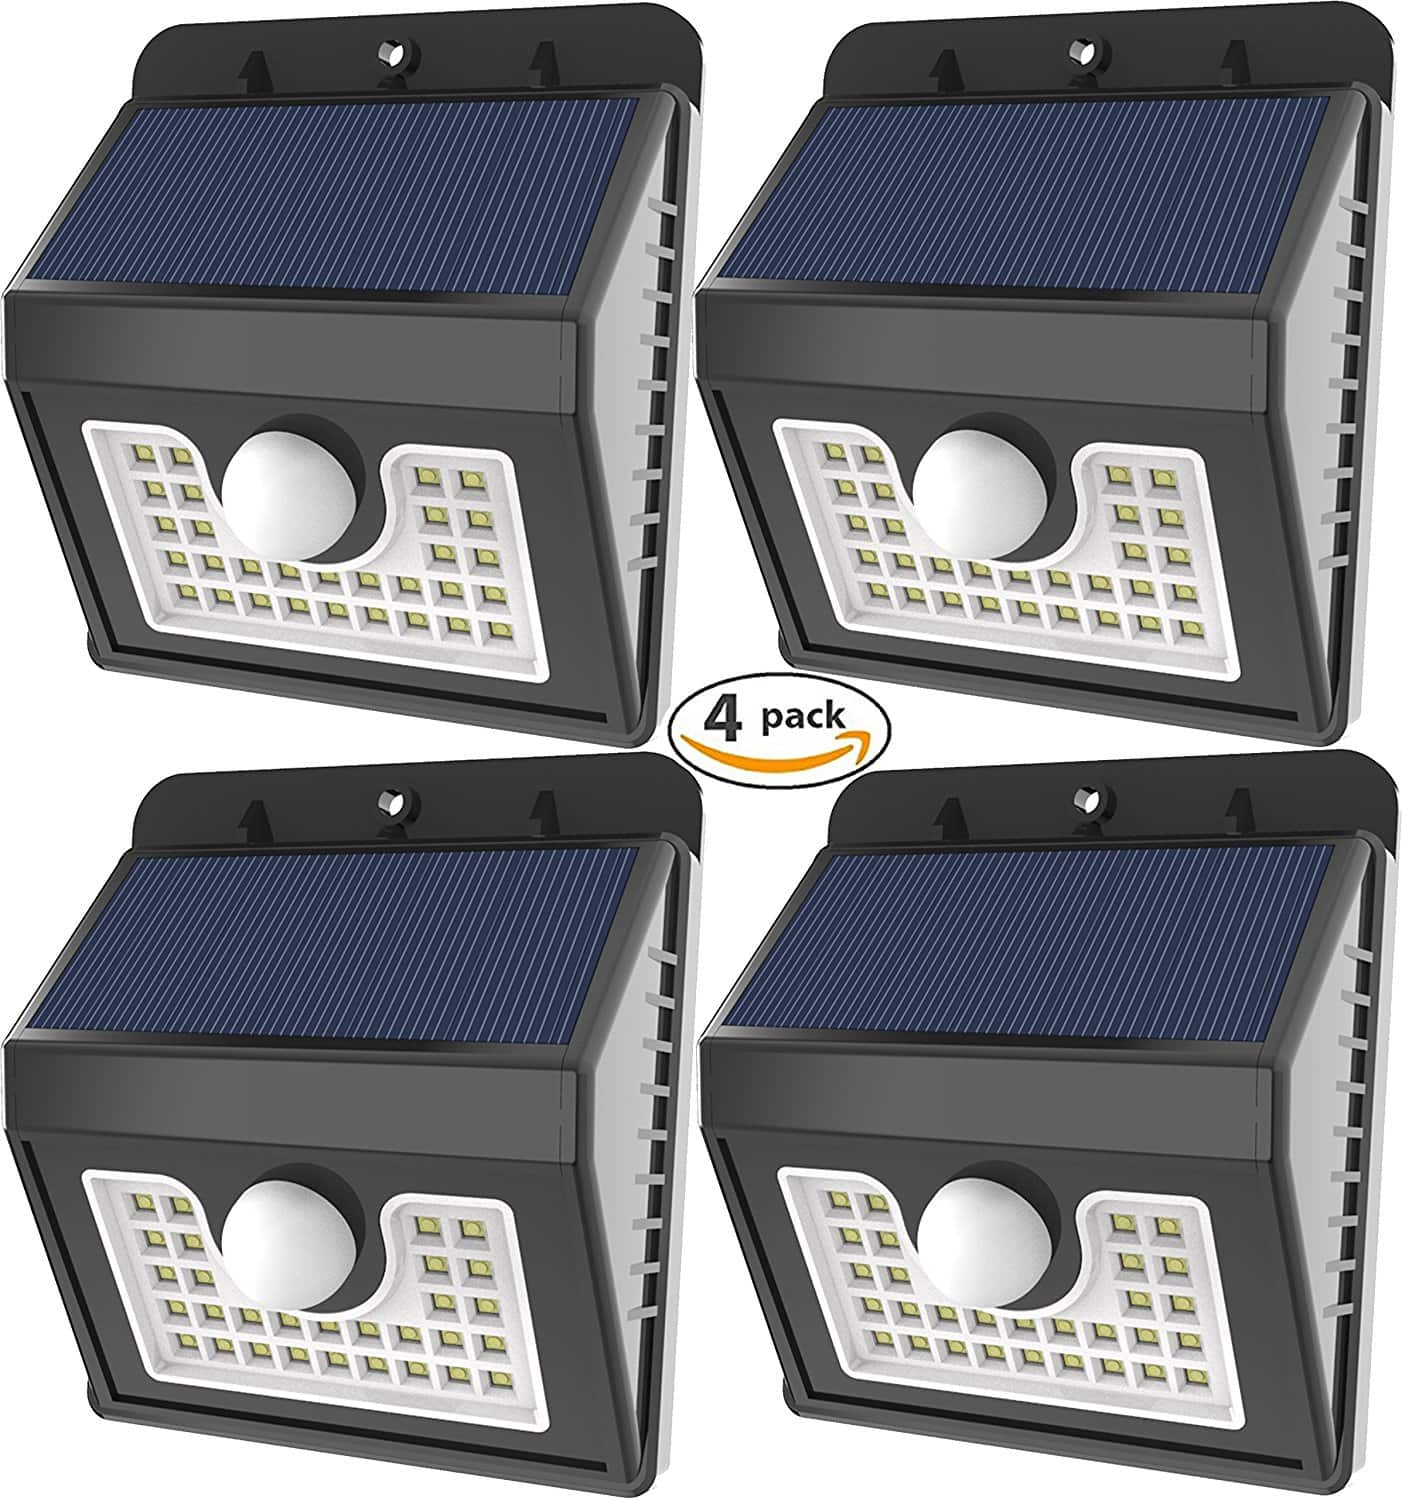 4-Pack Vivii 30 led Outdoor Security Solar lights for $26.99 @Amazon